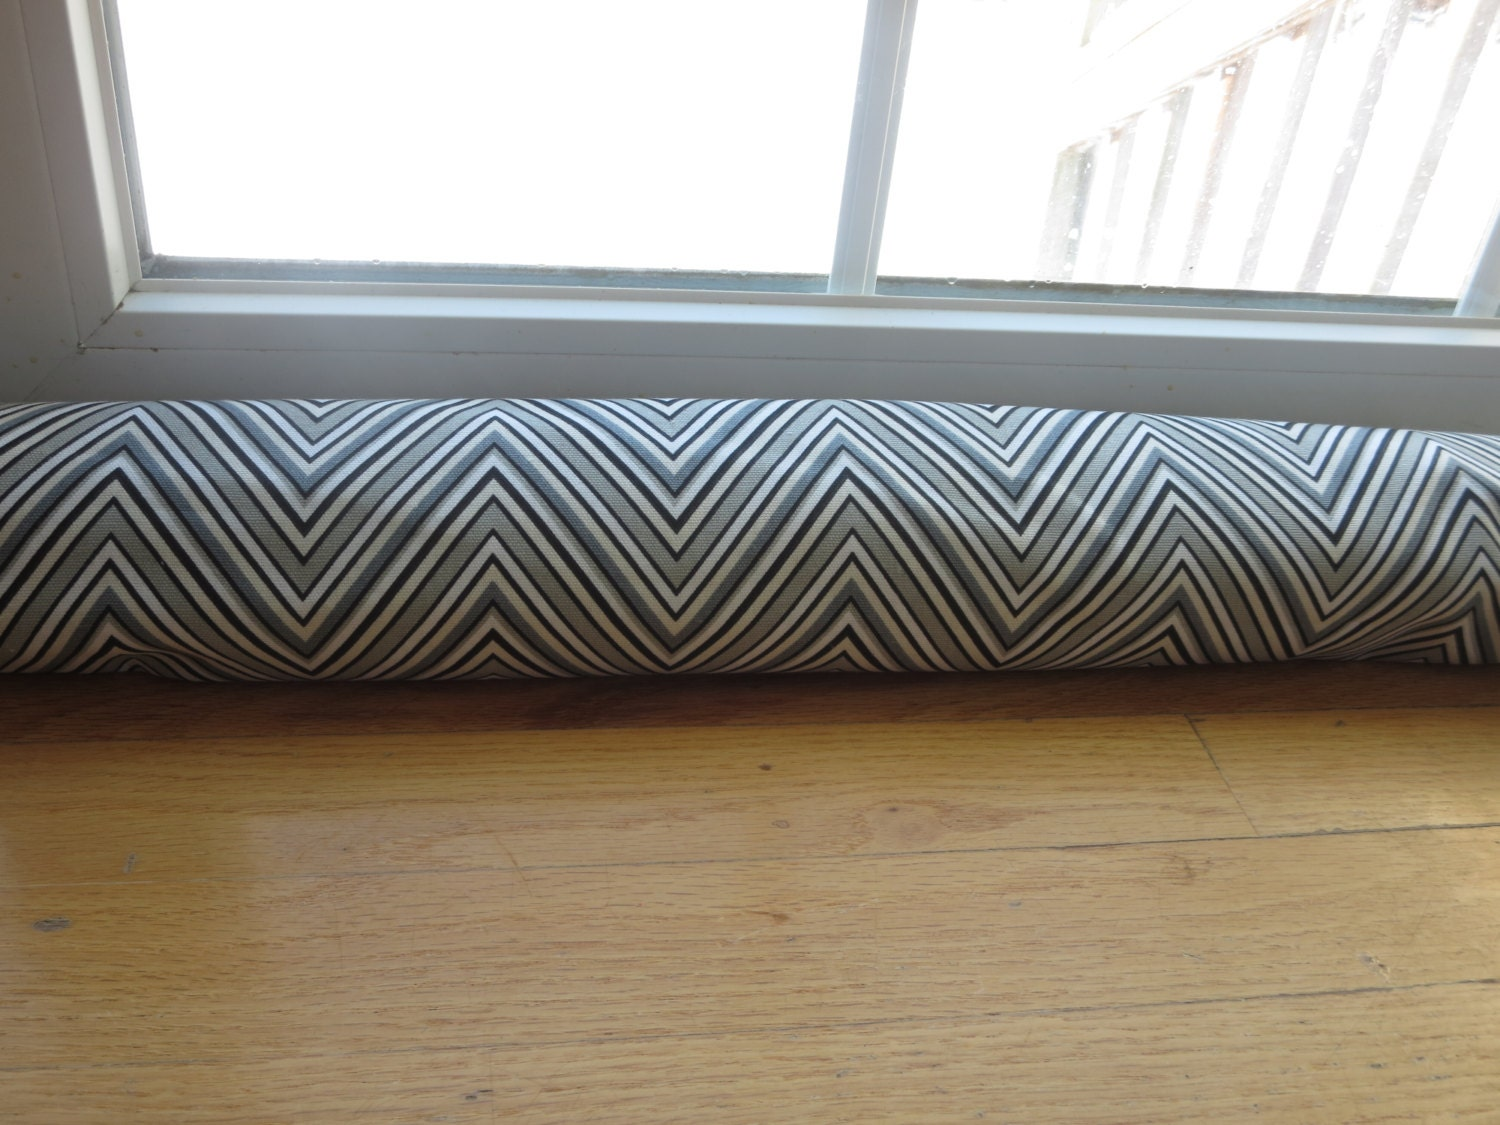 Door draft stopper cover gray chevron door snake gray for Door draft stopper